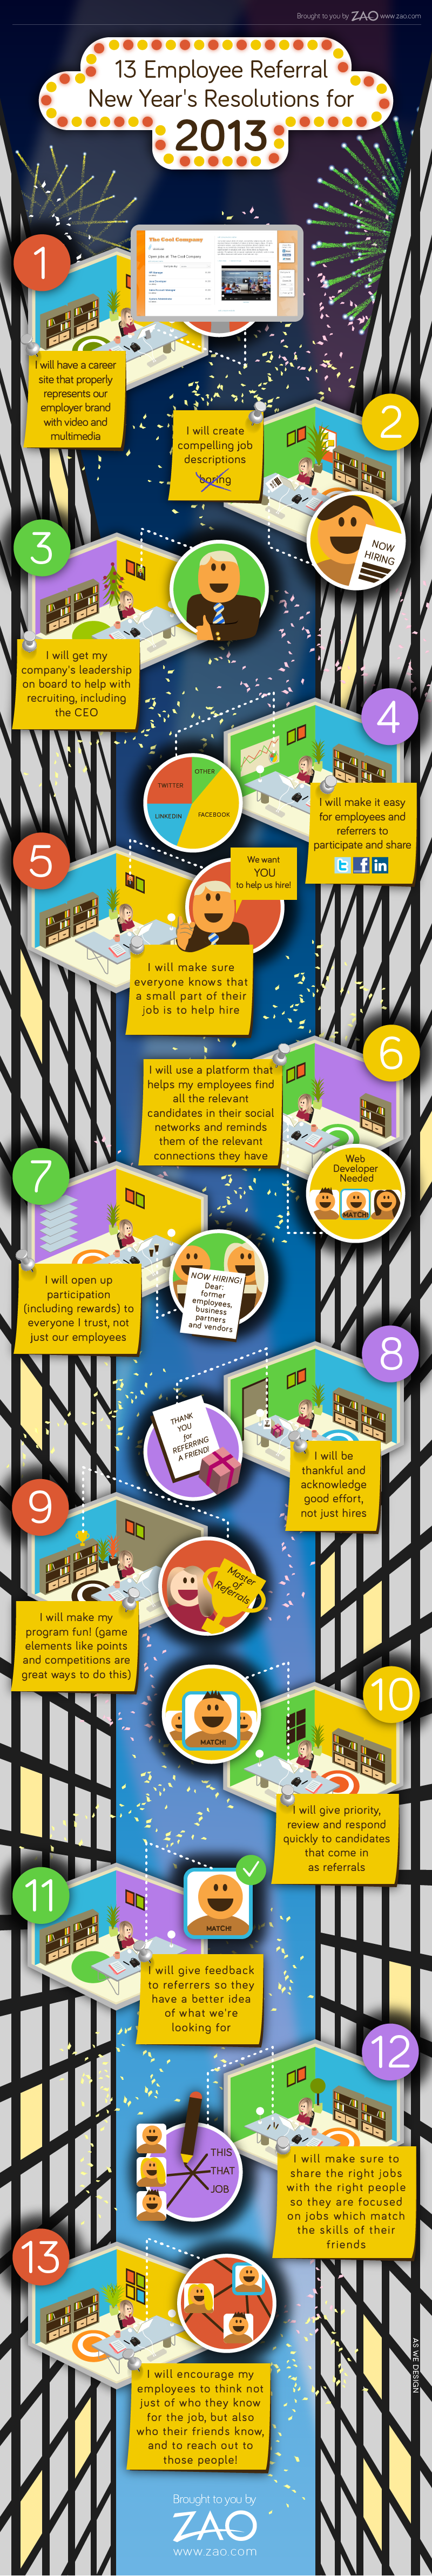 http://cdn2.business2community.com/wp-content/uploads/2013/01/resolutions_infographics_02-01.png